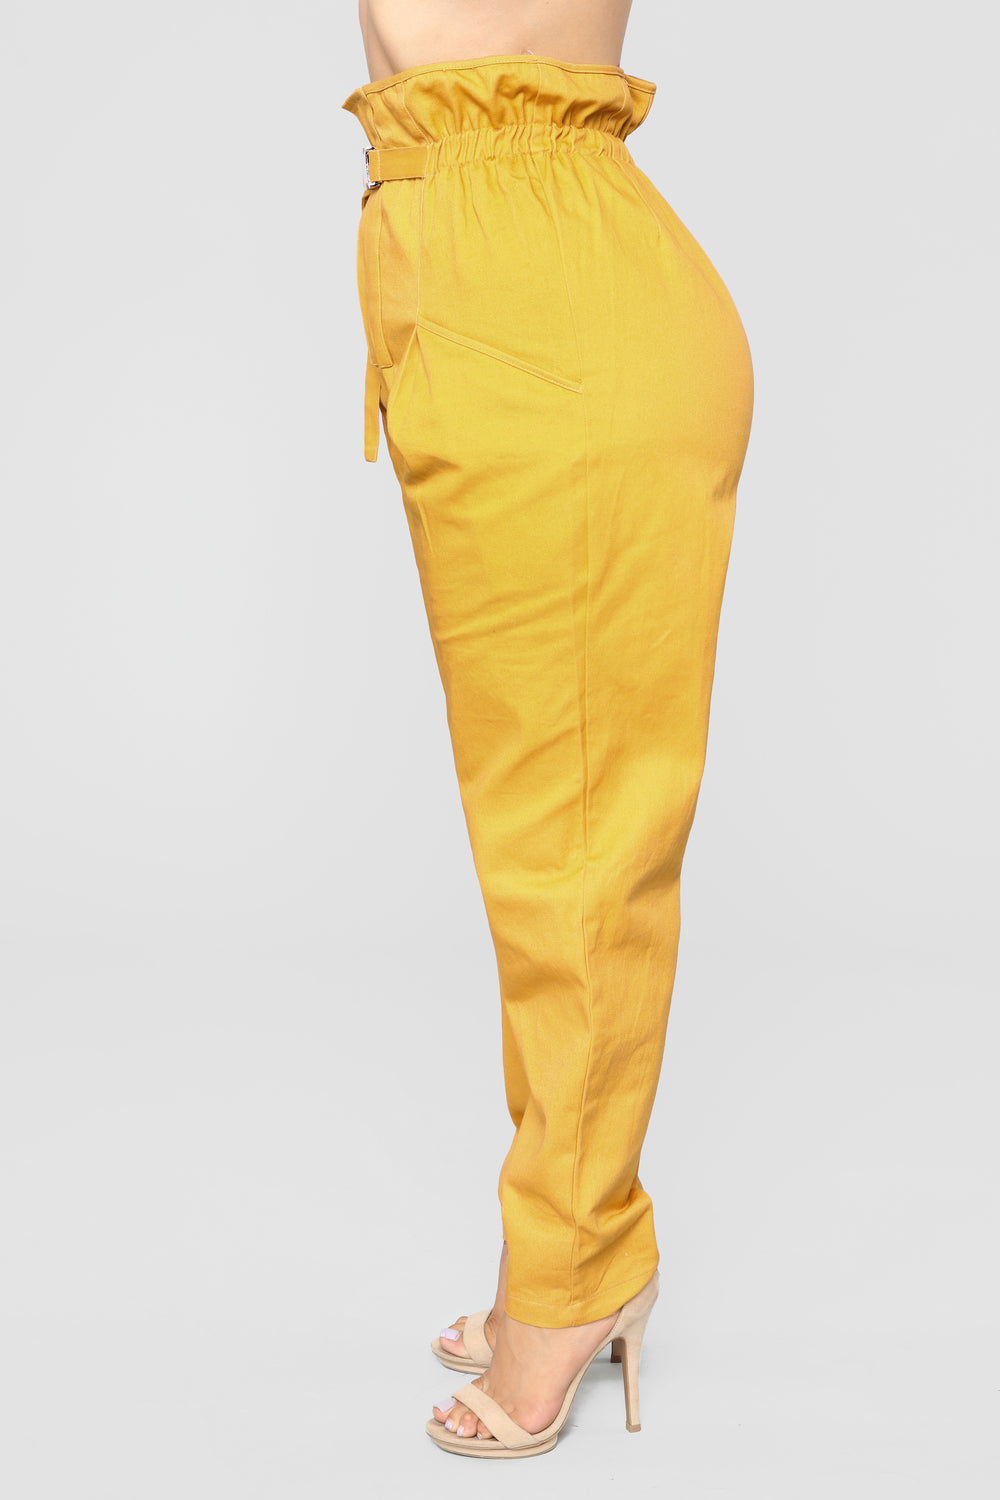 Pay Day Slay Day Paper Bag Waist Pants - Mustard